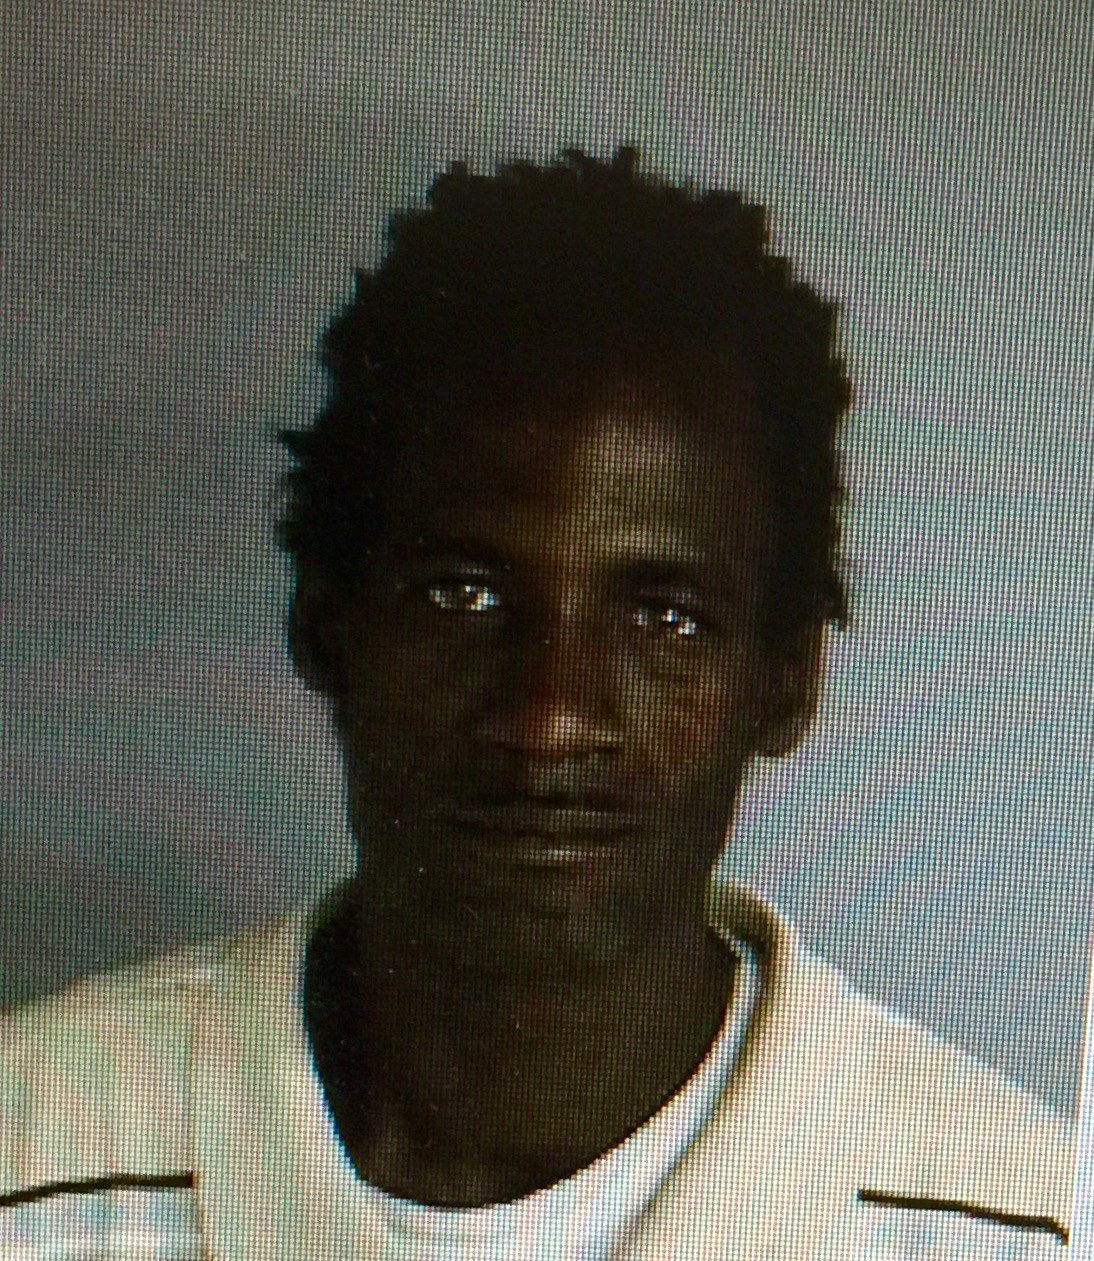 James Blakley was charged with possessing crack cocaine in Danielson on Tuesday, according to CT State Police. (WFSB)